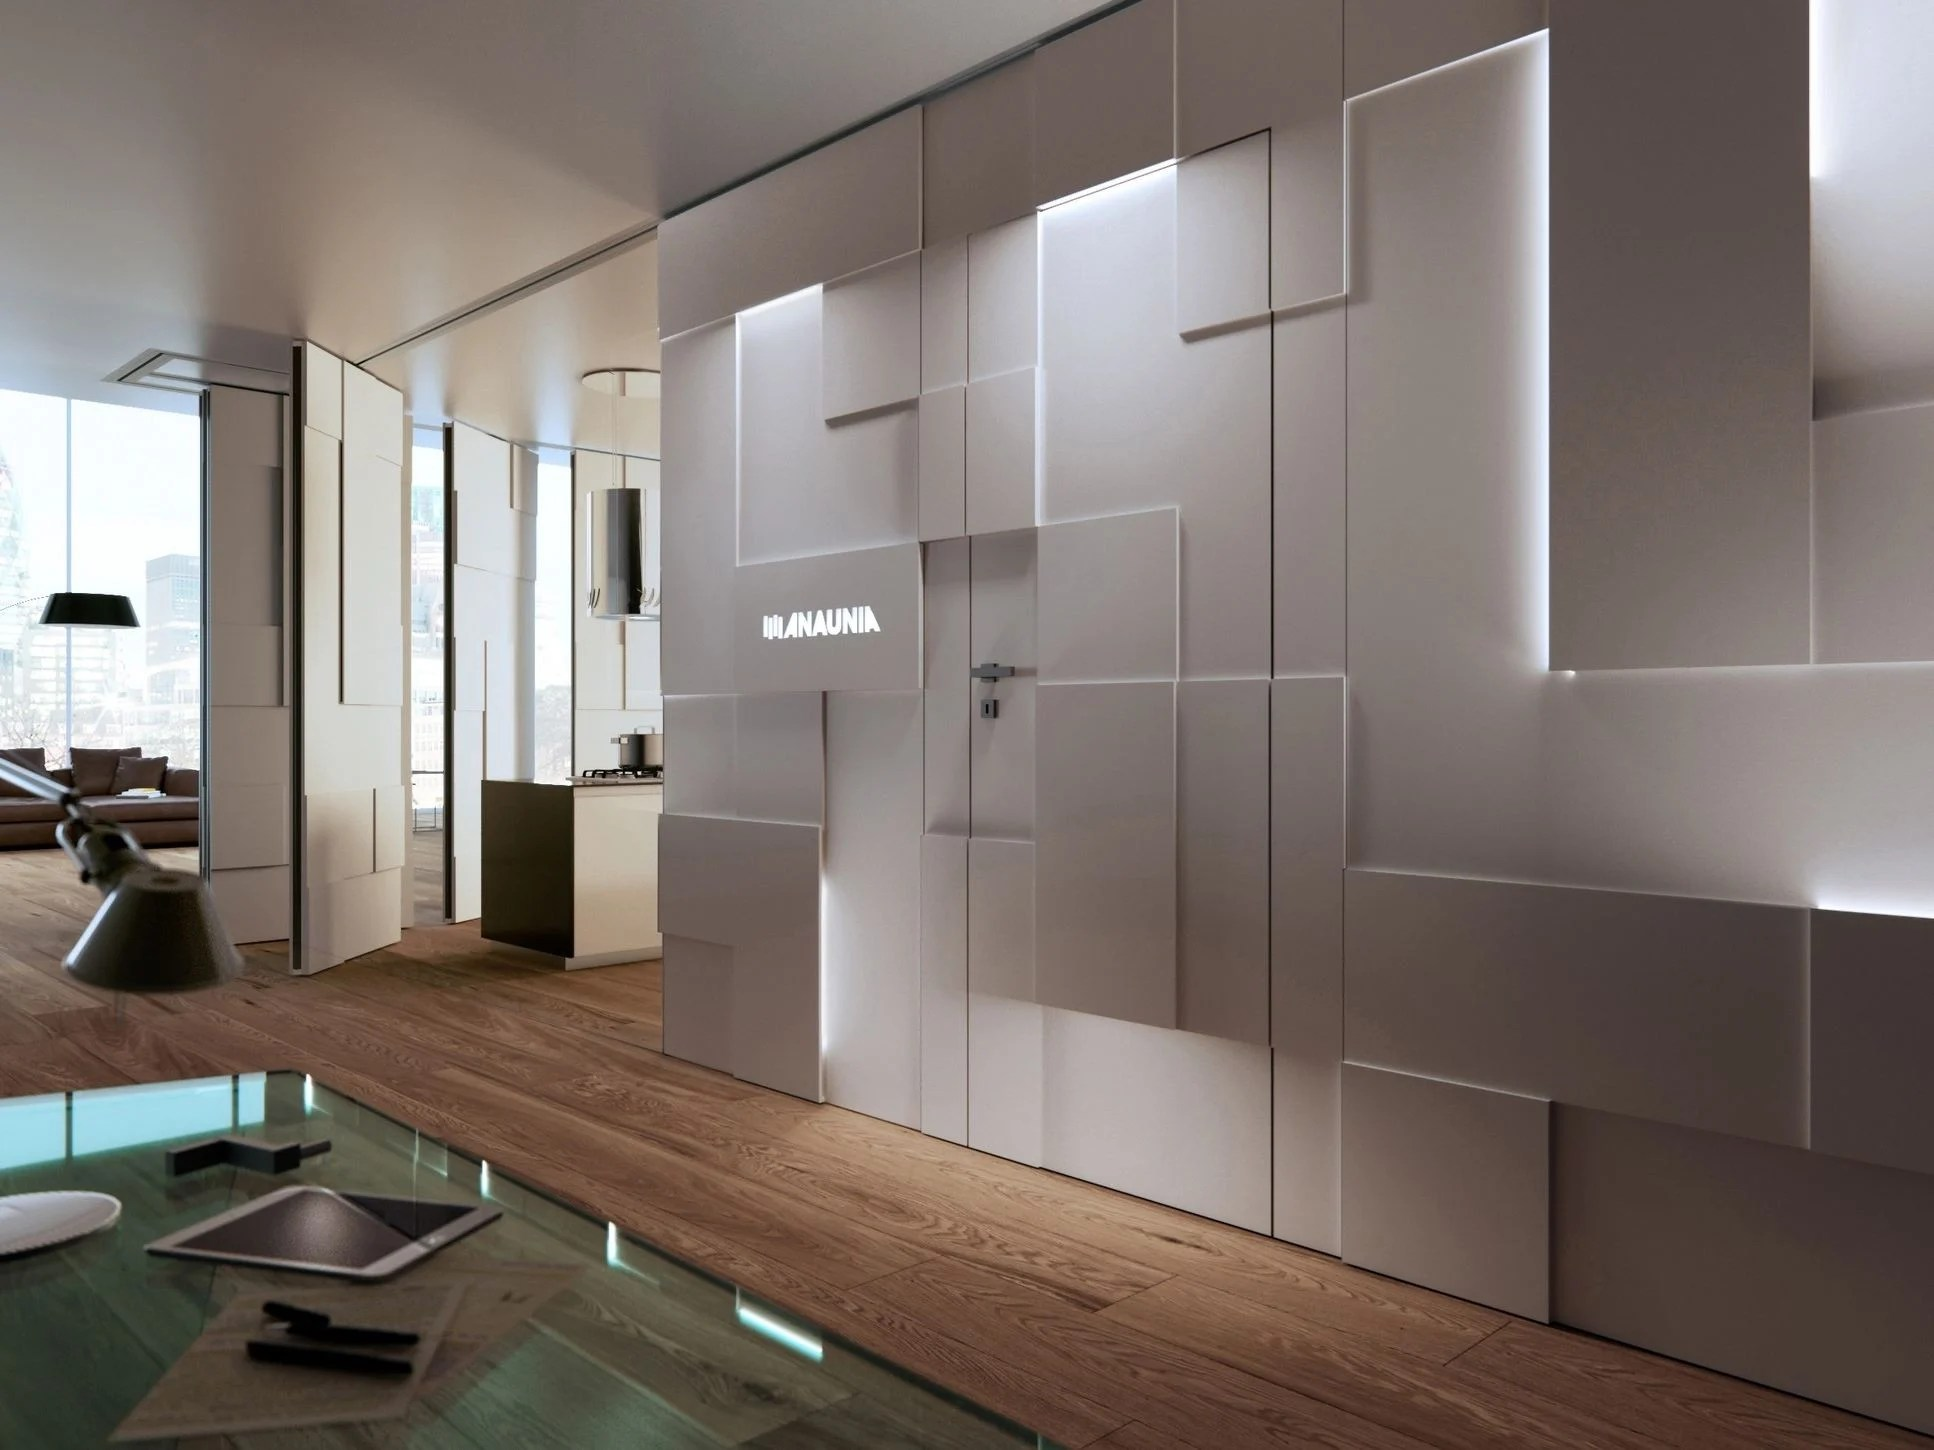 Partitions Designs Operable Wall Shine Wall By Anaunia Design Tommaso Pezzi